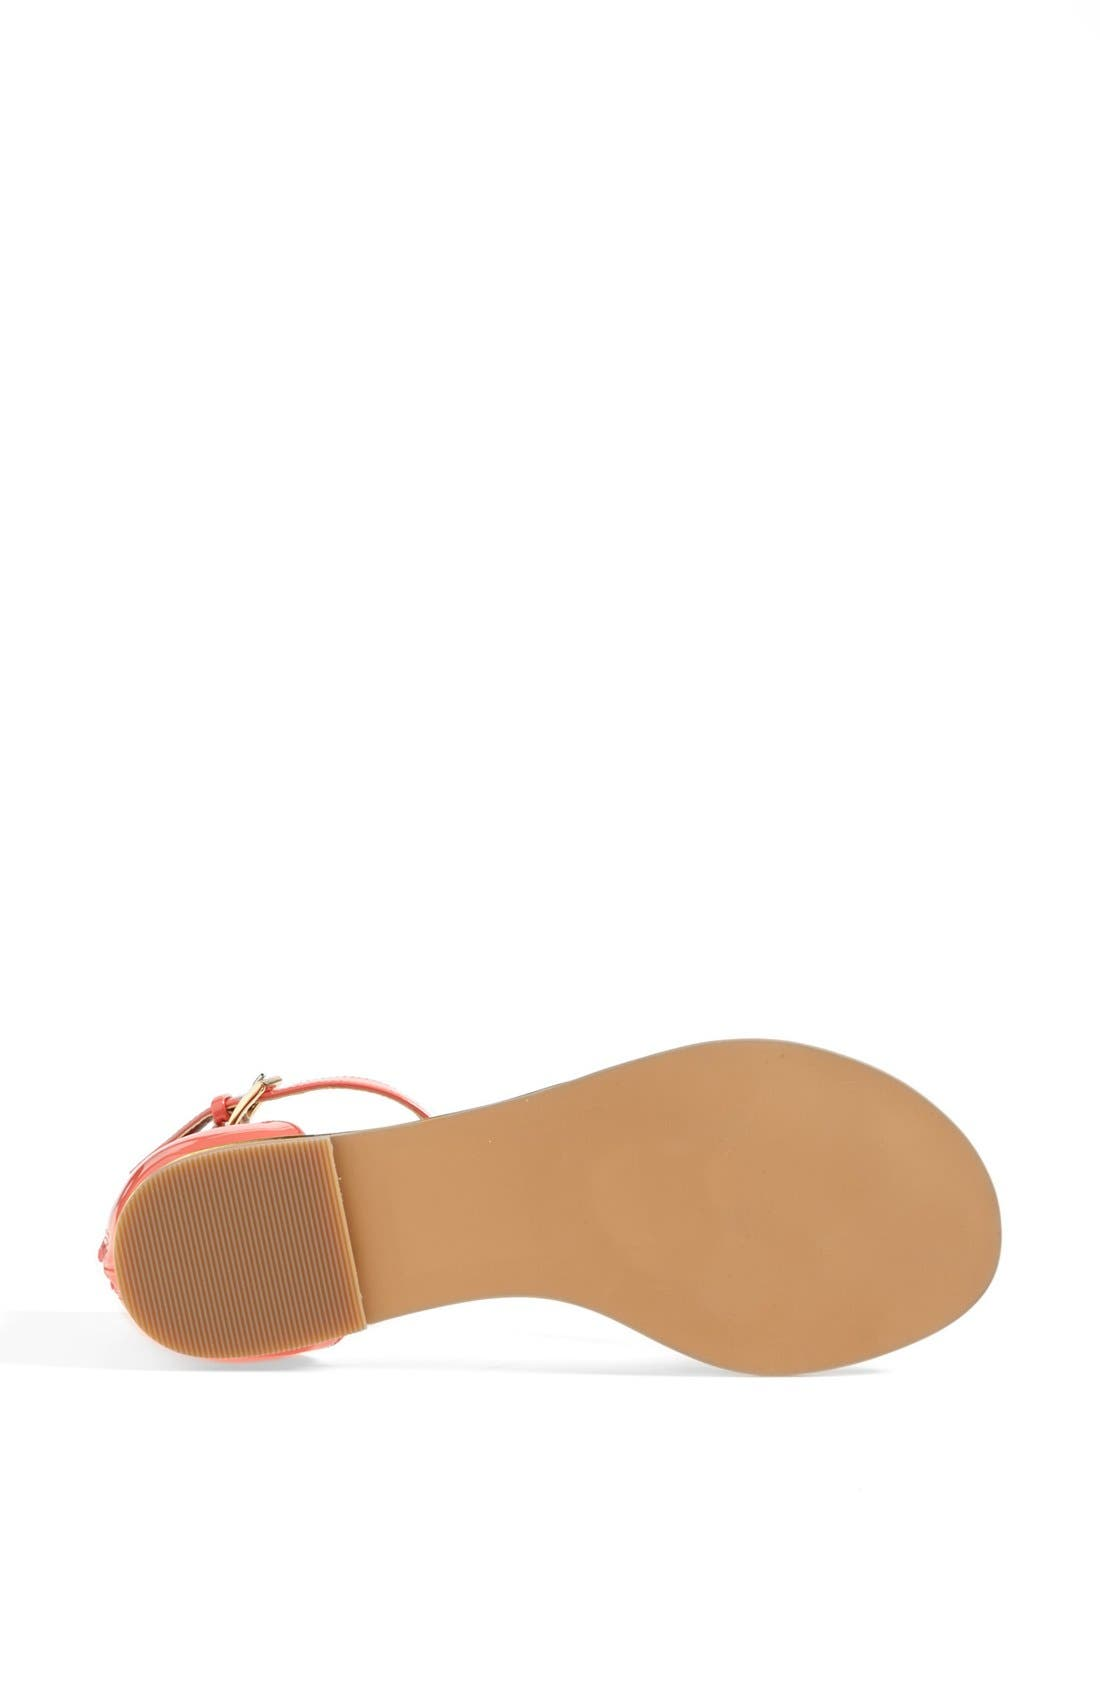 'Bonsai' Sandal,                             Alternate thumbnail 4, color,                             Coral Patent